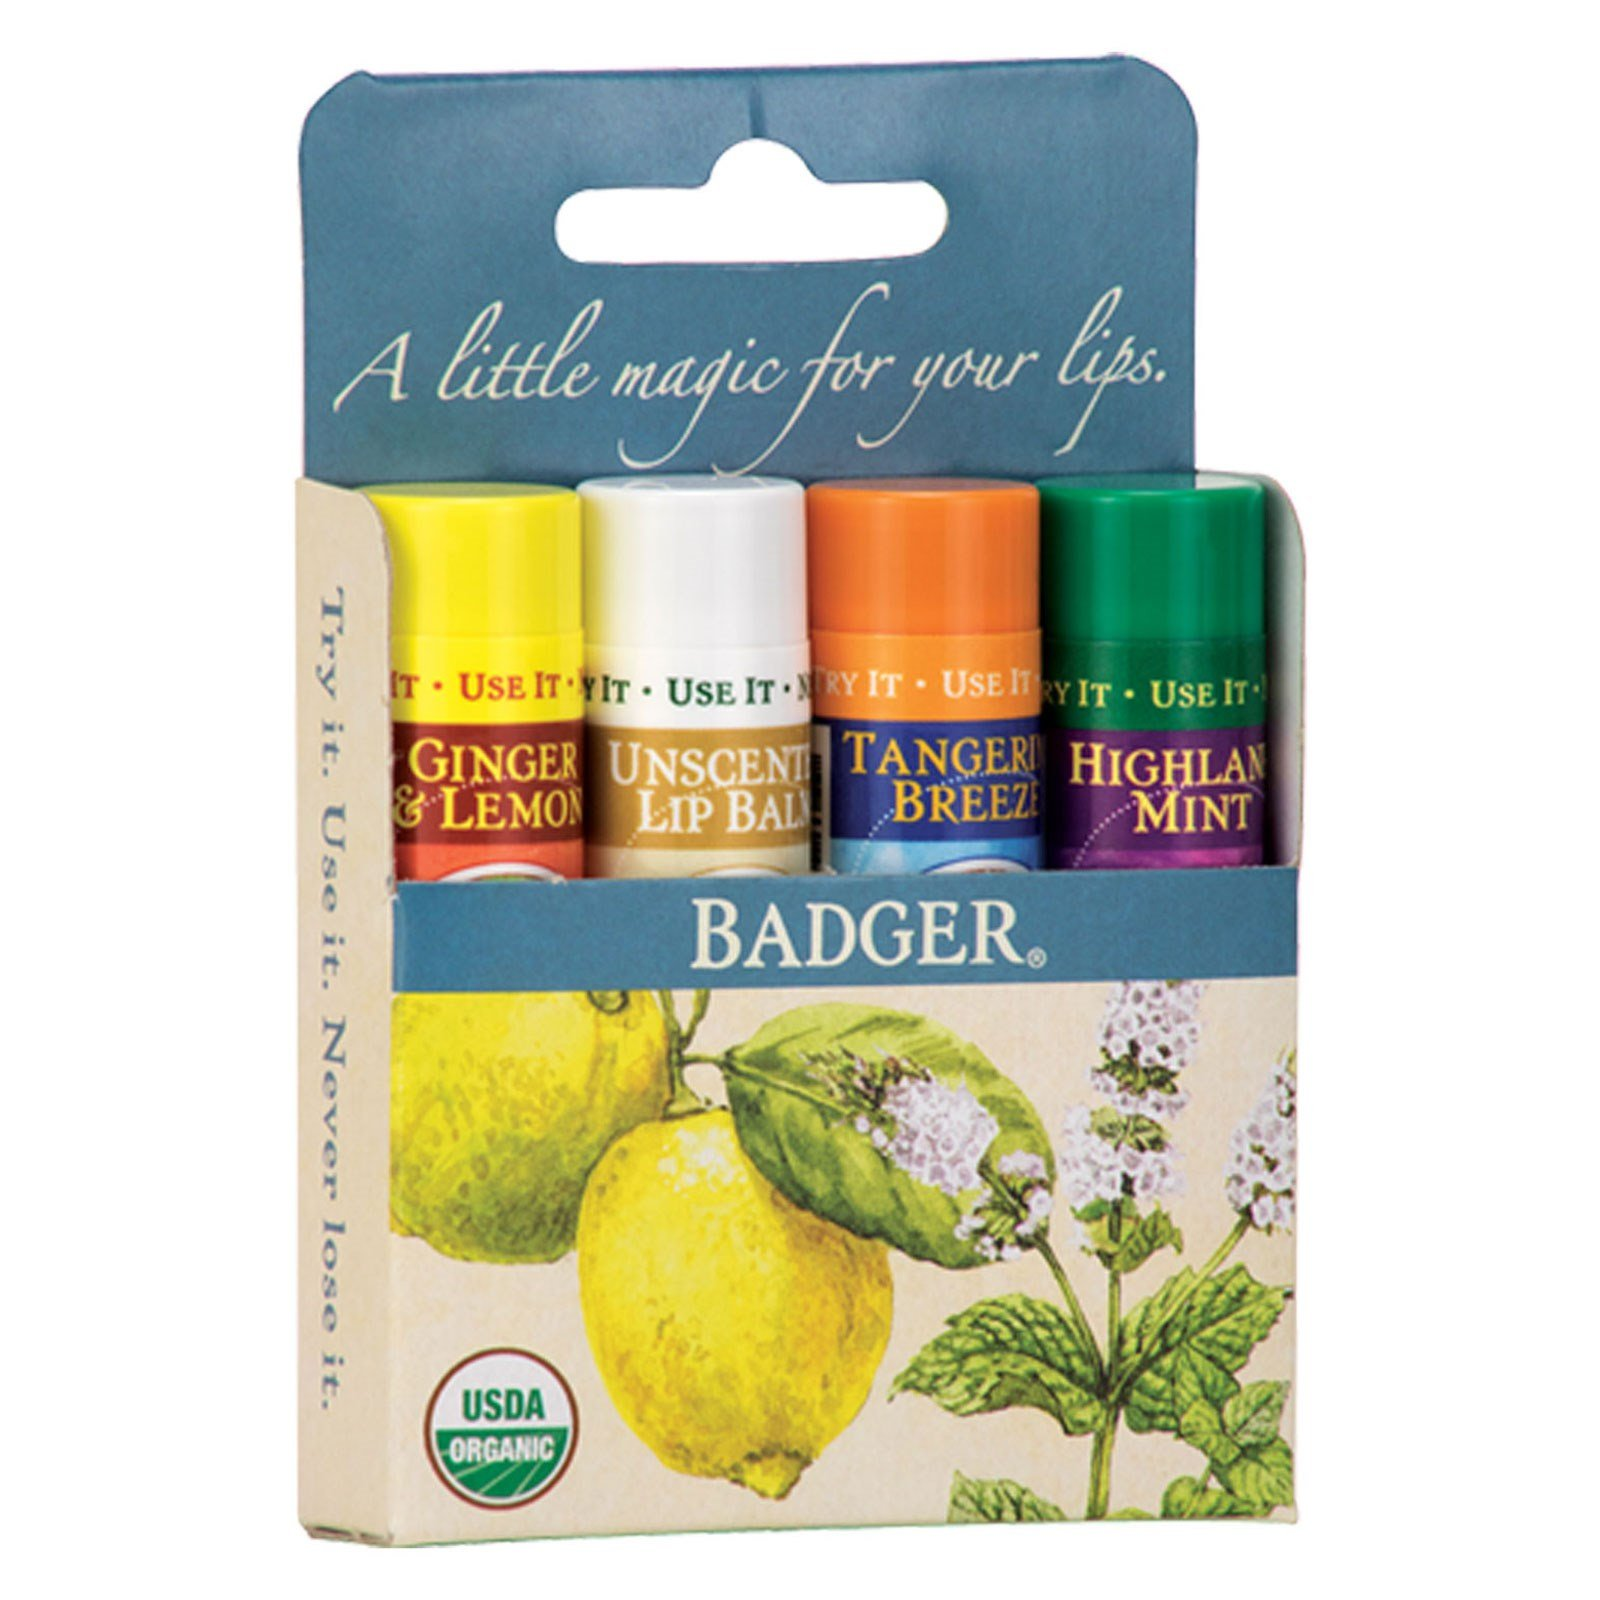 Badger - Certified Organic Classic Lip Balm Variety Pack - 4 x 0.15 oz. (pack of 4) doTERRA Verge Skin Care Collection by doTERRA